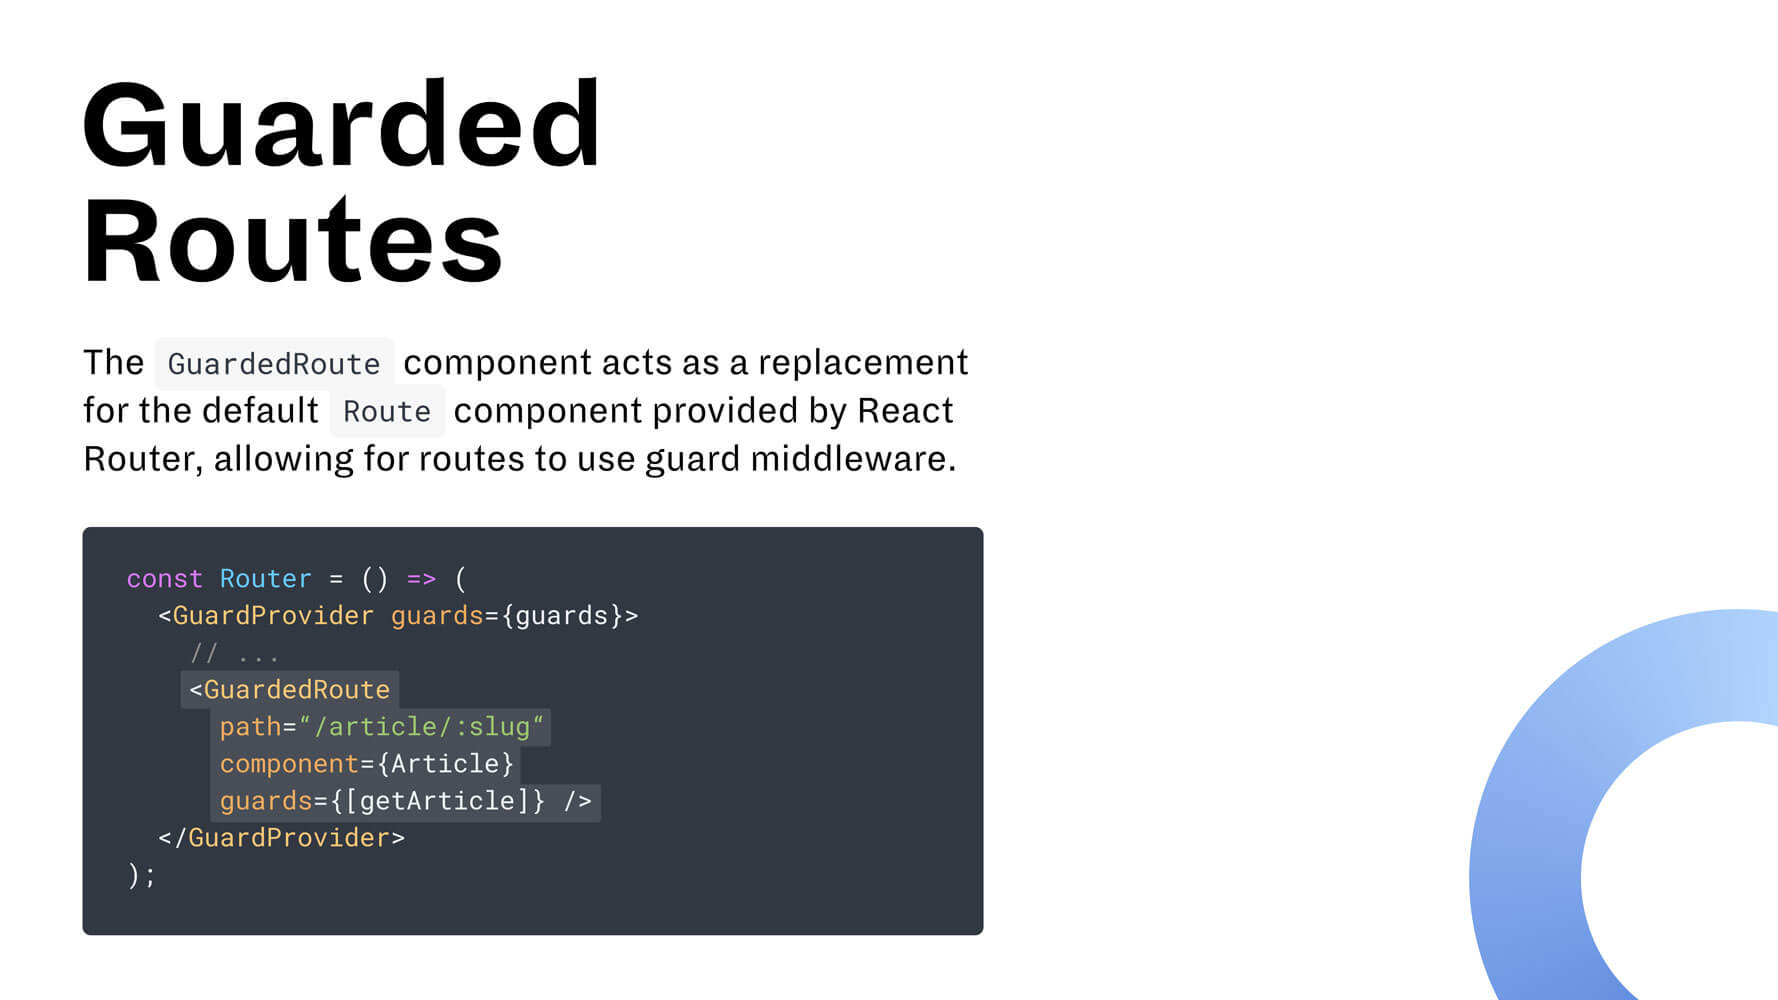 A slide explaining was a Guarded Route is, with a code example.